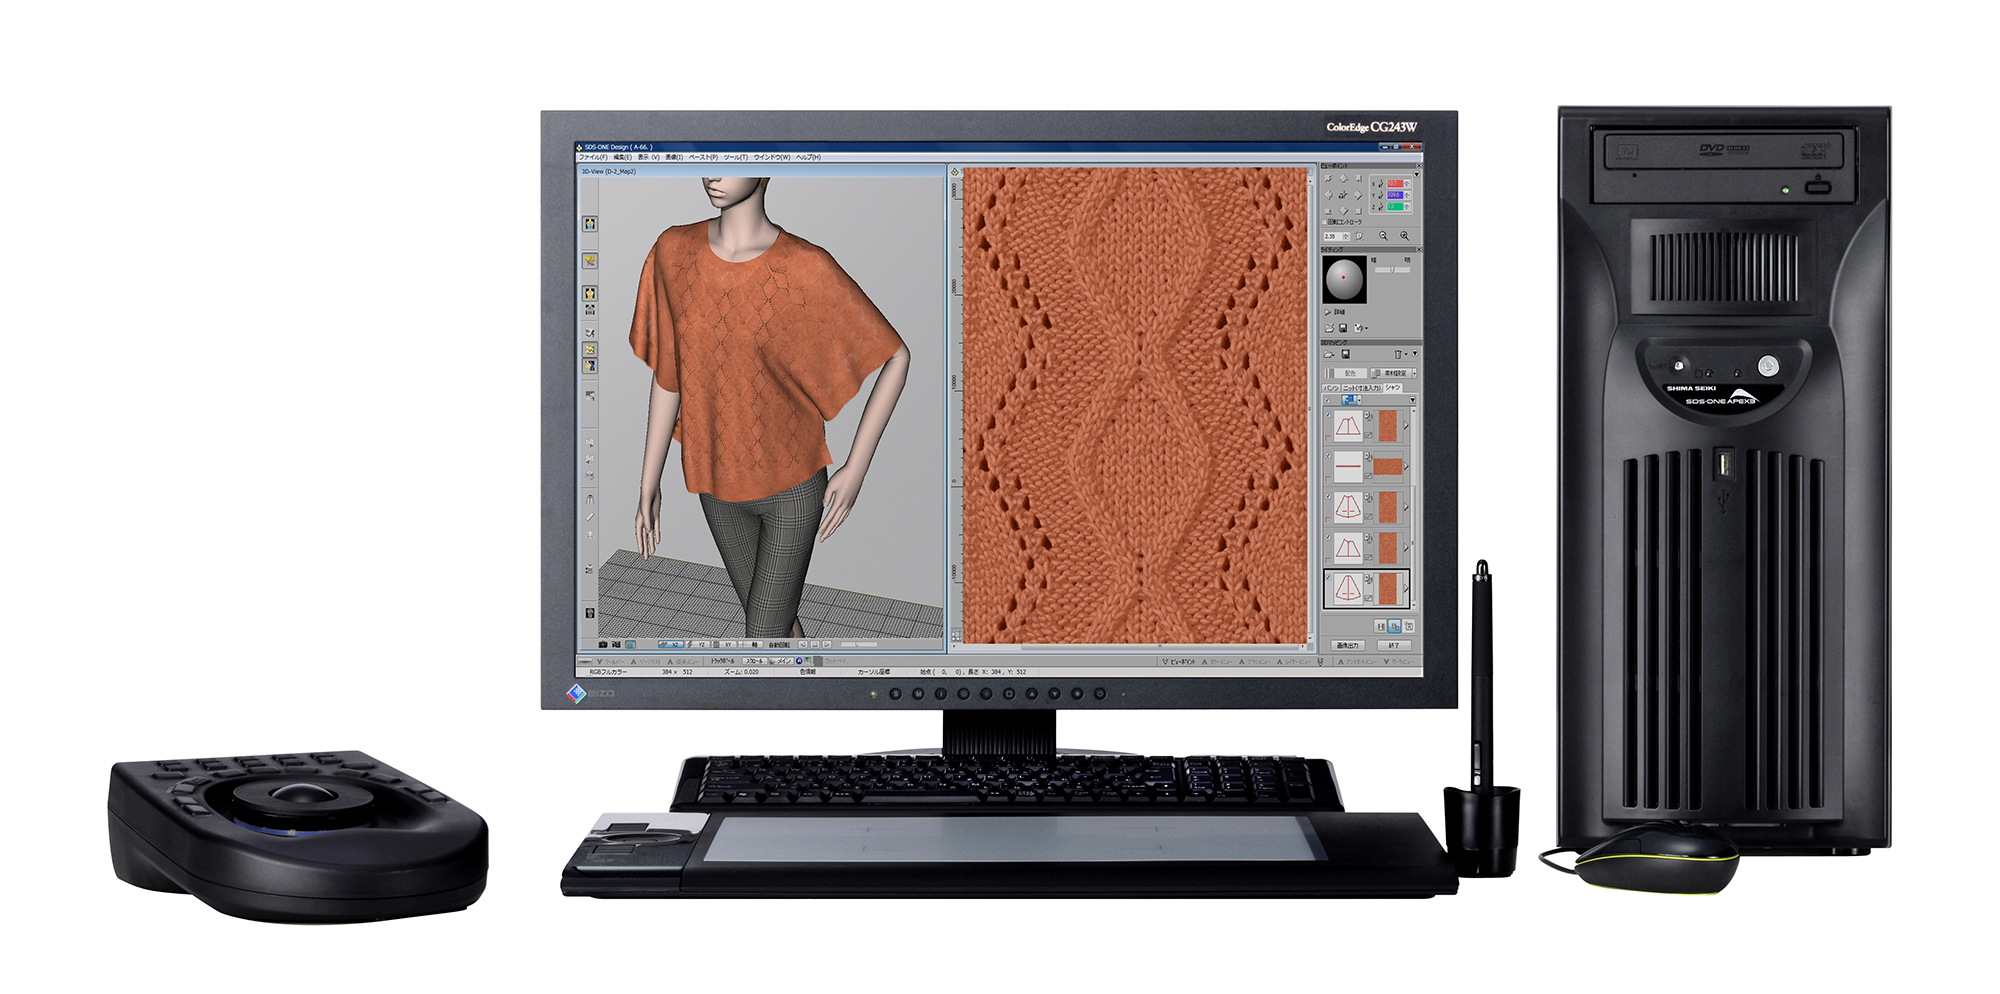 APEX3 supports design and simulation in a variety of industries ranging from flat knitting to circular knitting, weaving, pile weaving, printing and more. © Shima Seiki